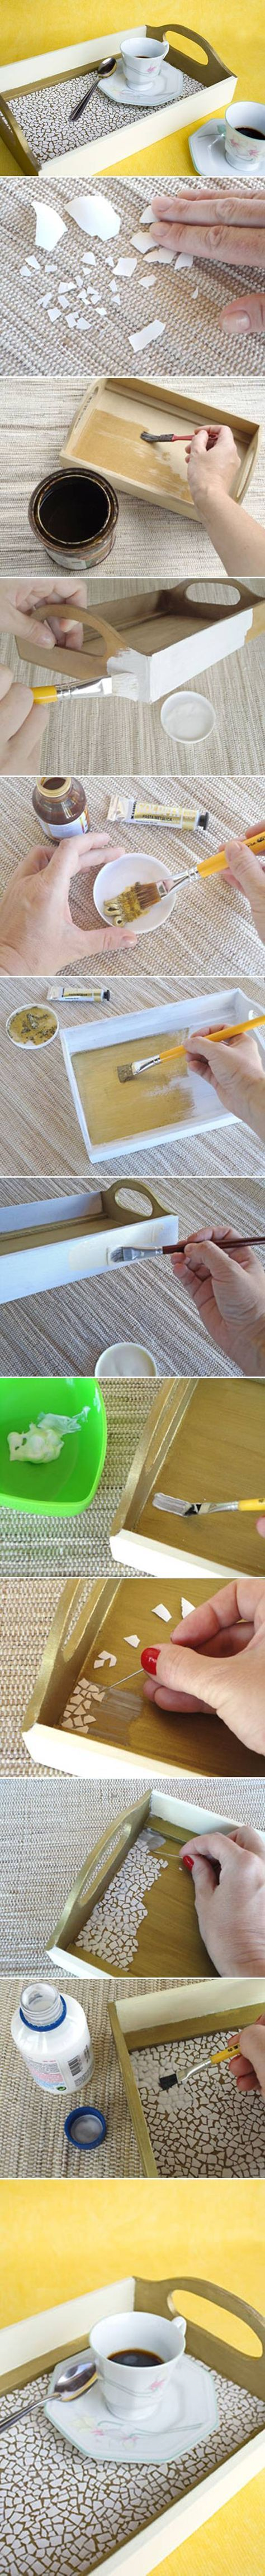 DIY Eggshell Mosaic Tray...Eggshell Mosaic Craft Tutorials to Try With Your Kids Today